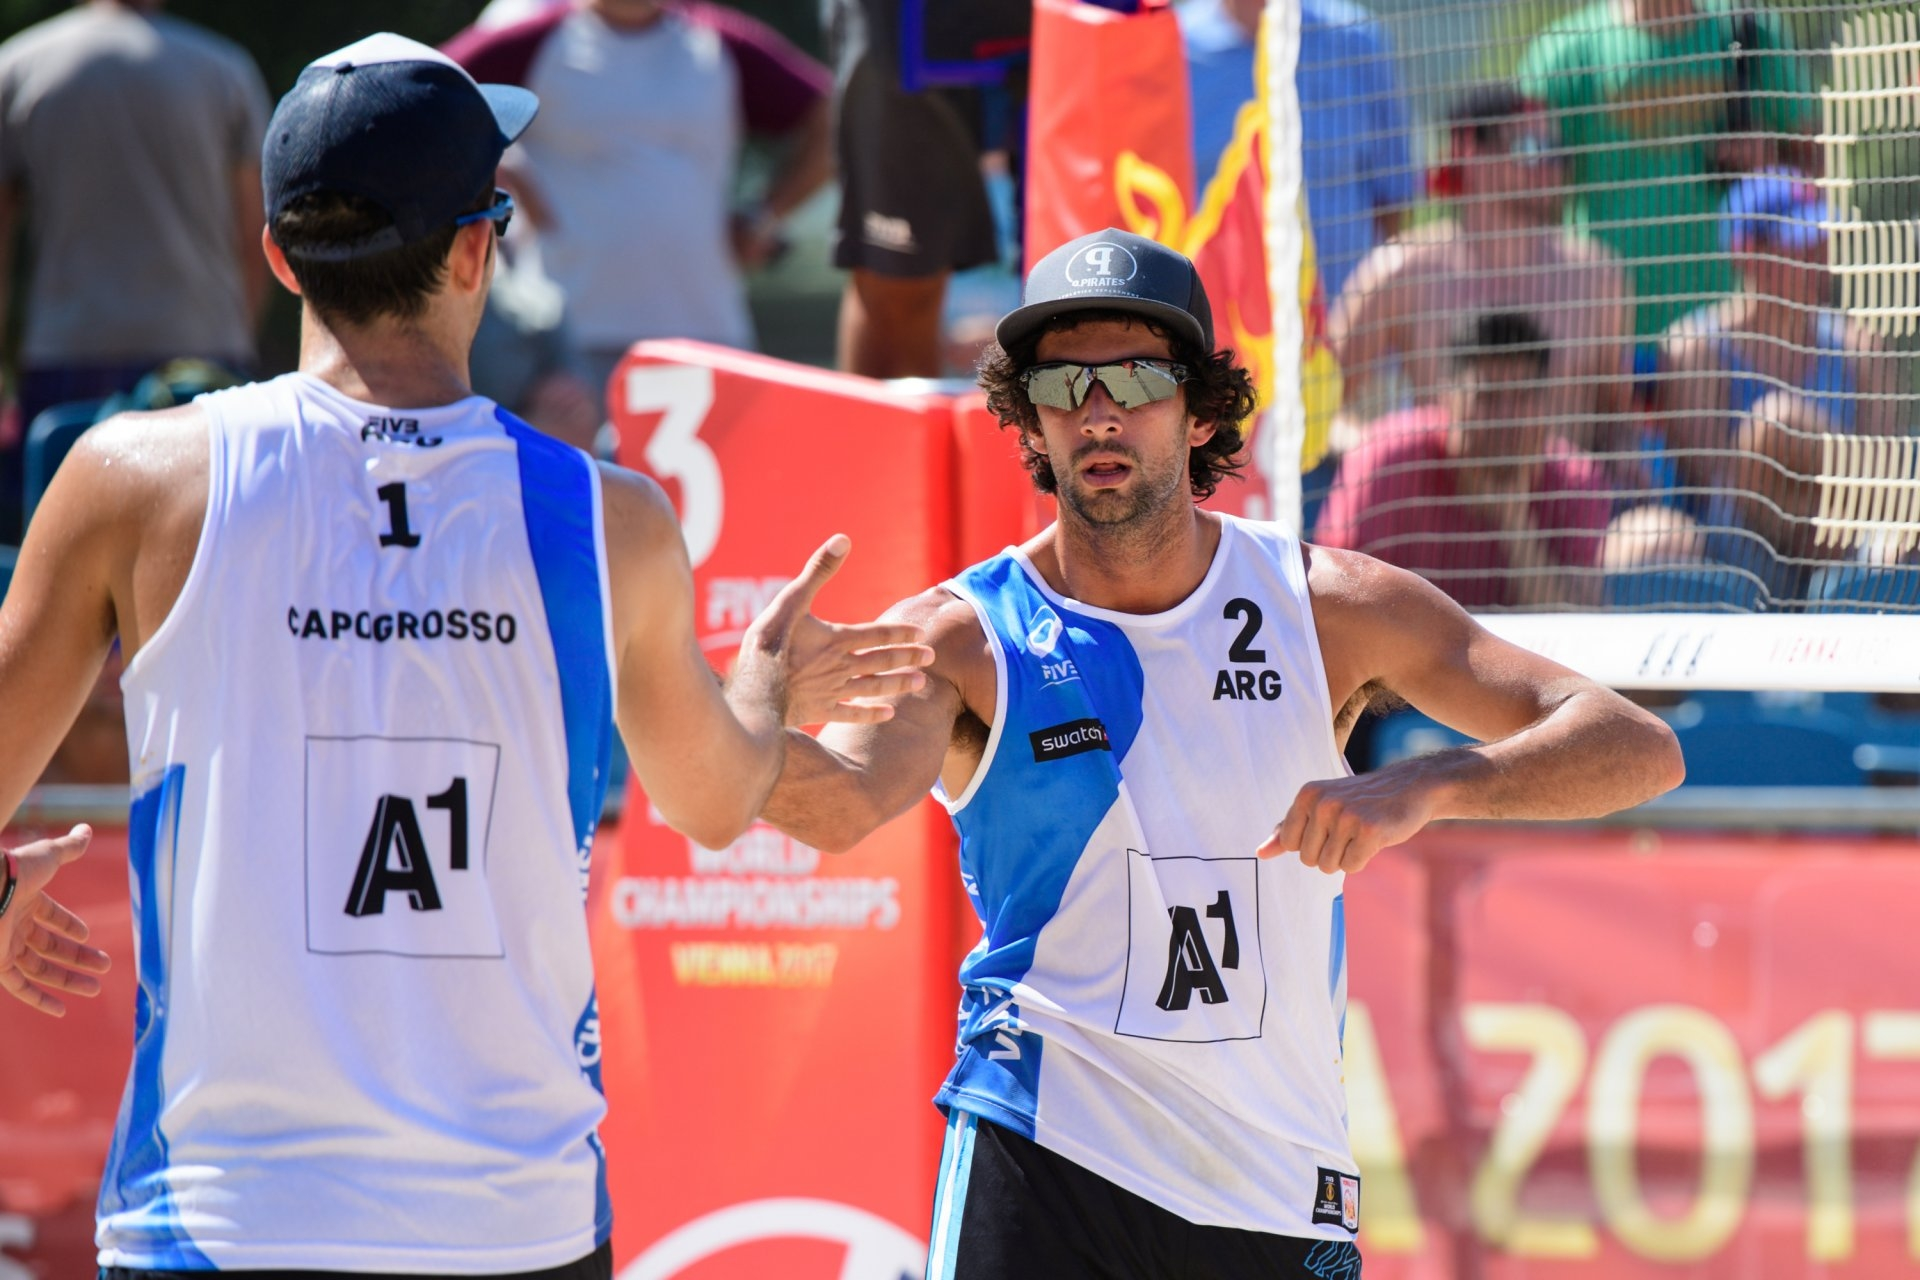 Argentineans Nico Capogrosso and Julian Azaad will play in Brazil this weekend (Photocredit: FIVB)